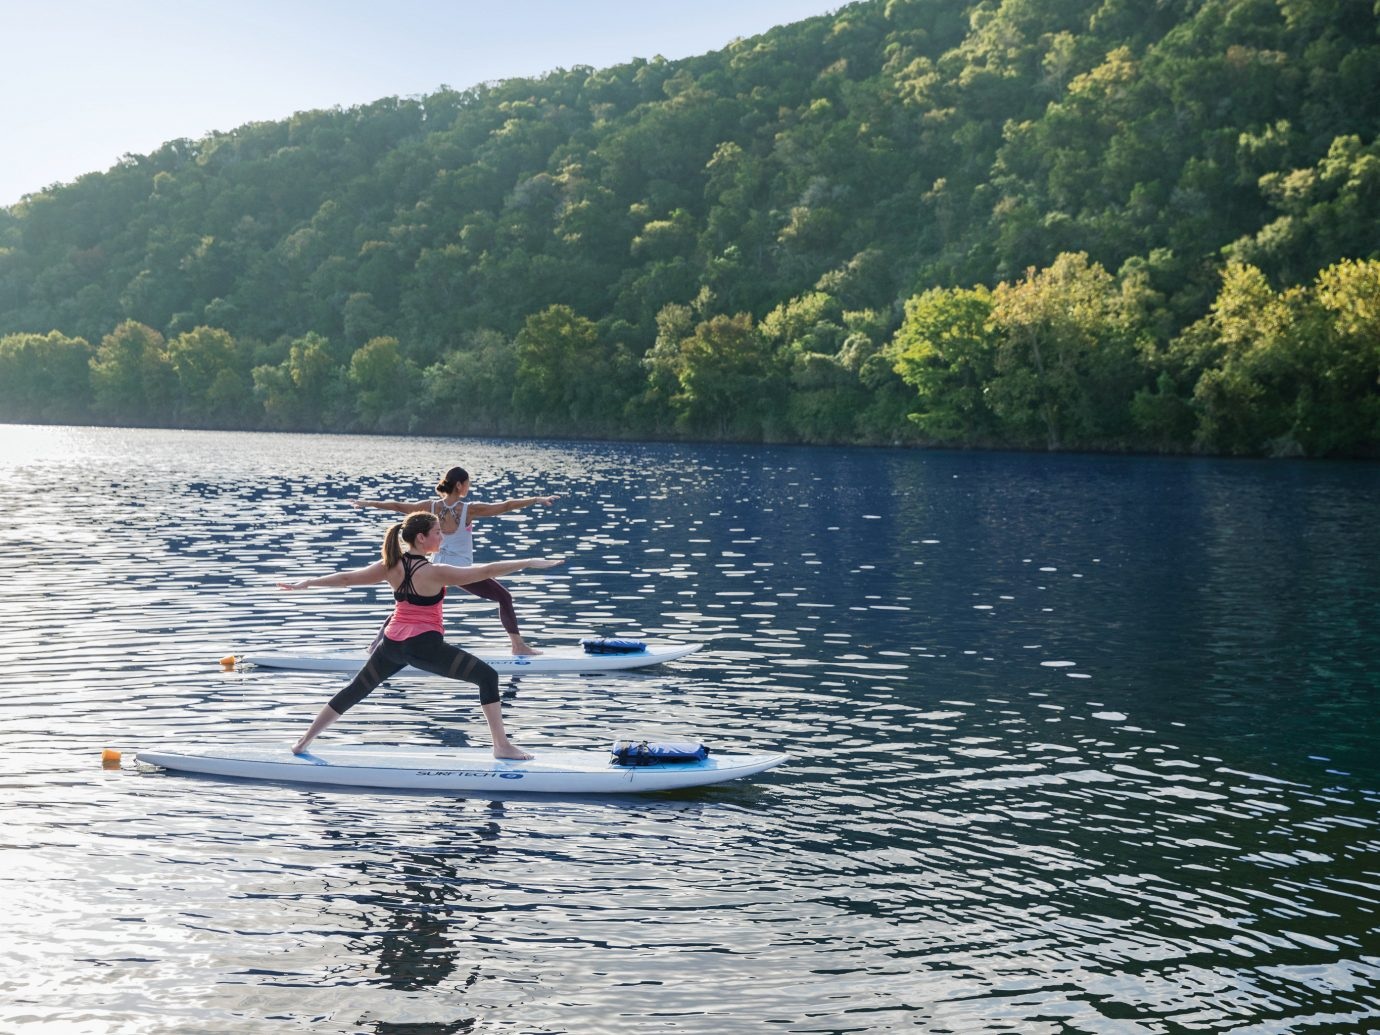 Hotels Lakes + Rivers Offbeat Trip Ideas water outdoor Sport mountain riding Lake boating water sport sports watercraft rowing paddle vehicle waterskiing Boat